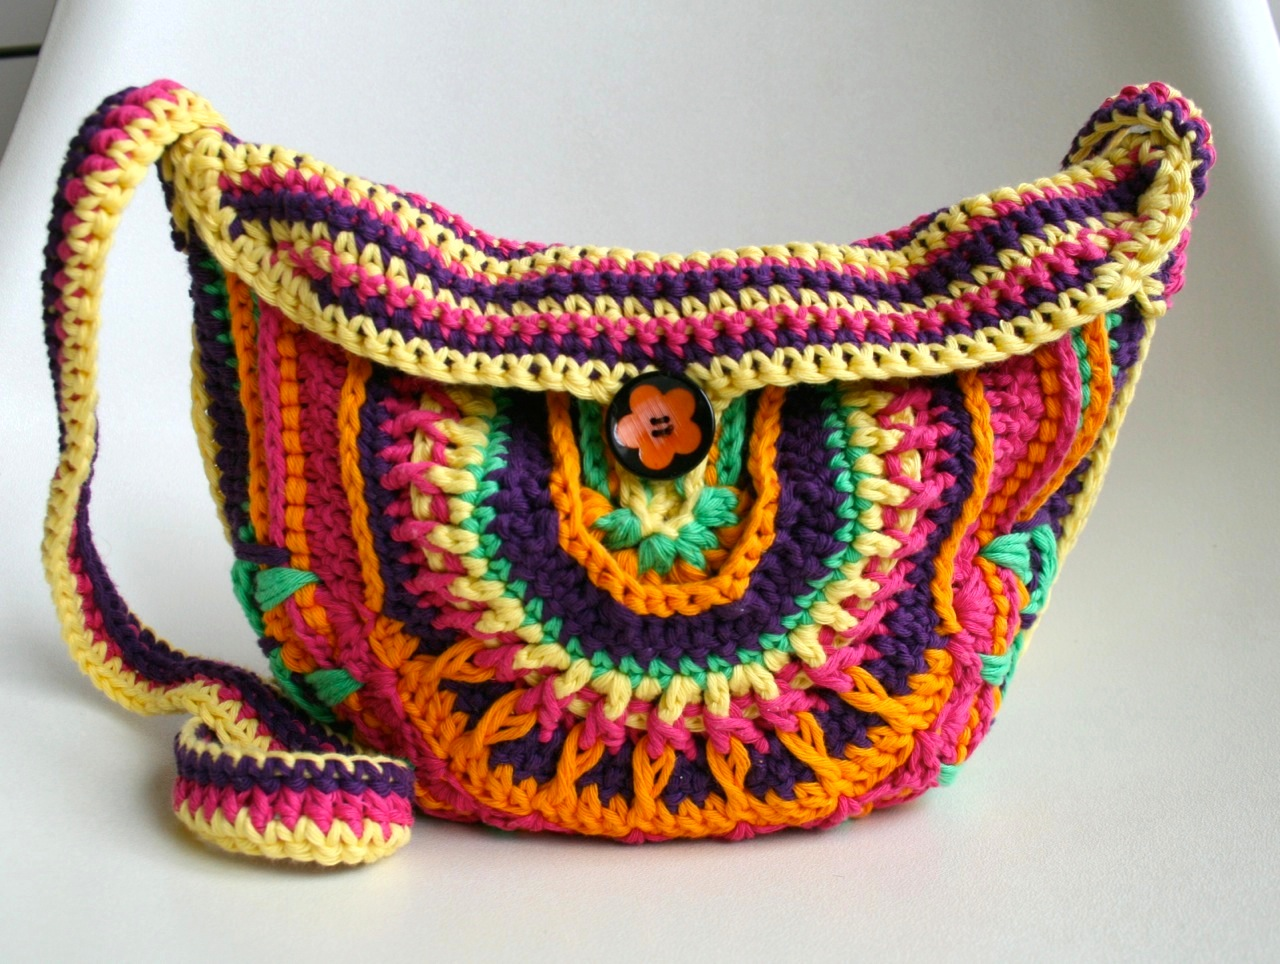 31 crochet purse patterns the funky stitch crocheted purse pattern bankloansurffo Choice Image